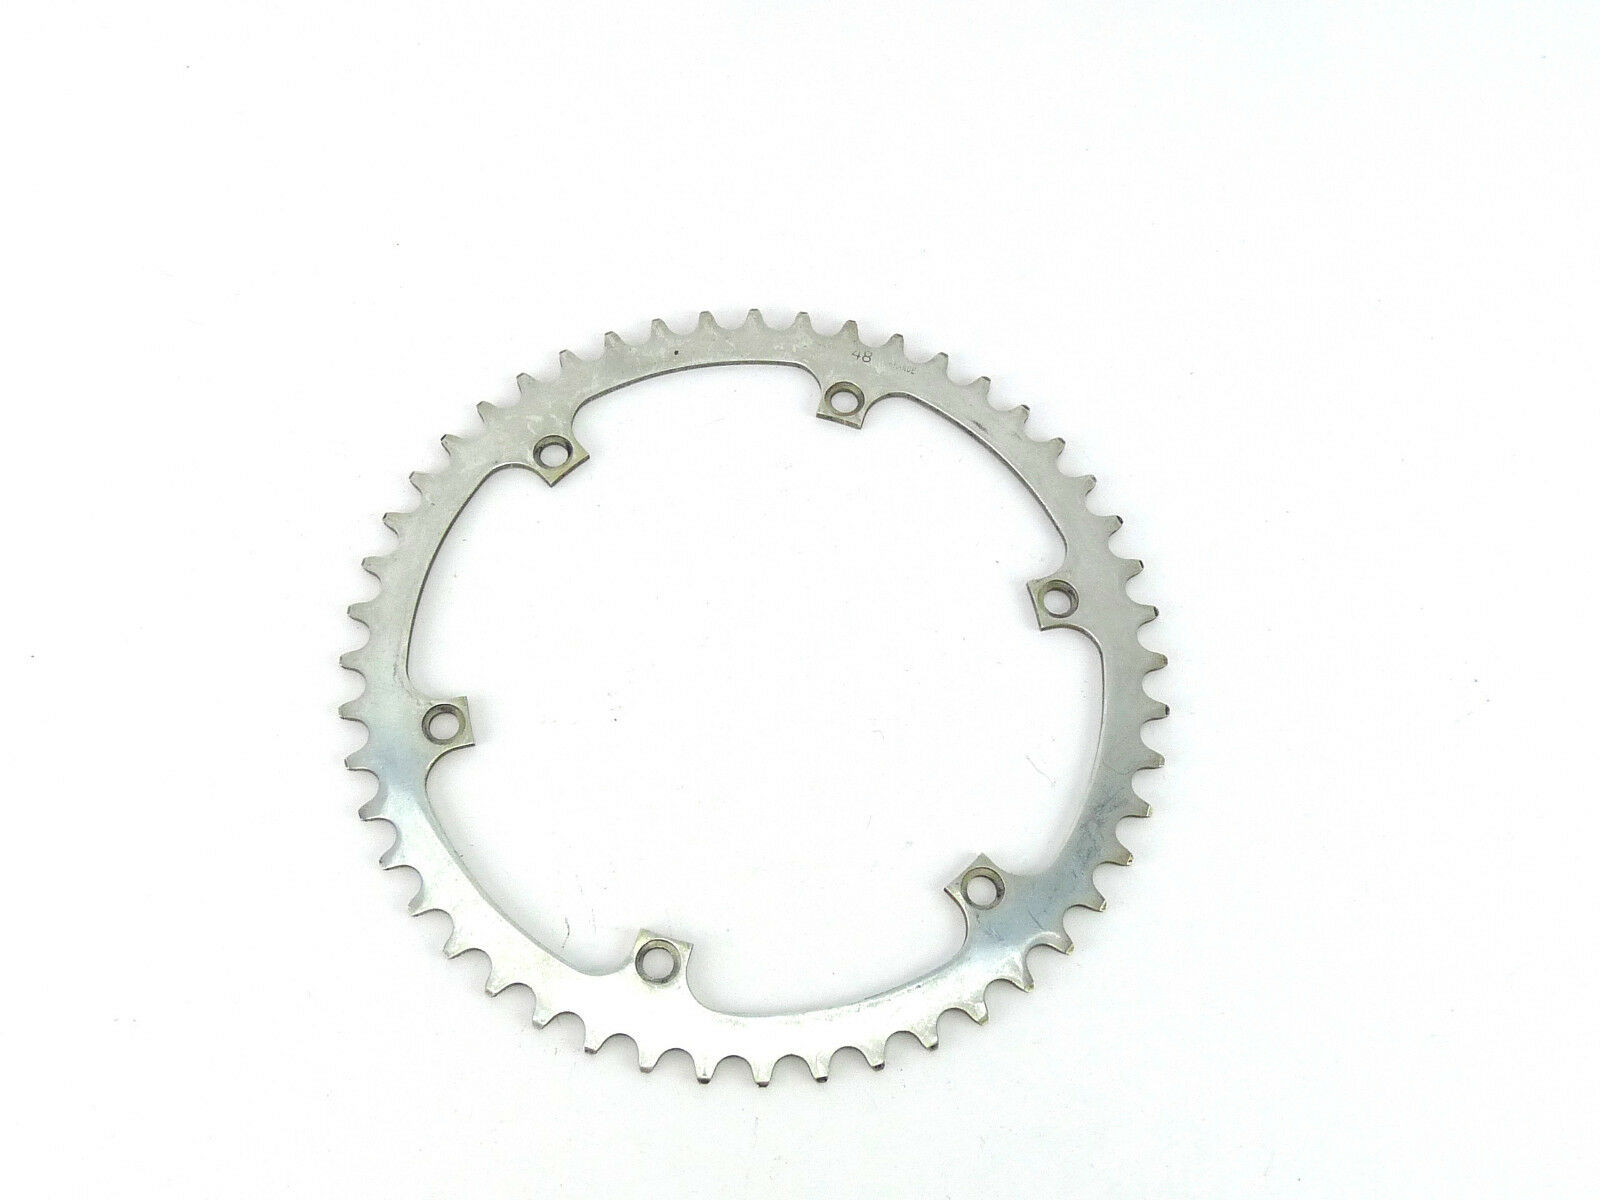 T.A. Criterium Chainring For Professional 48T REF  104 TA 48 152 BCD NOS